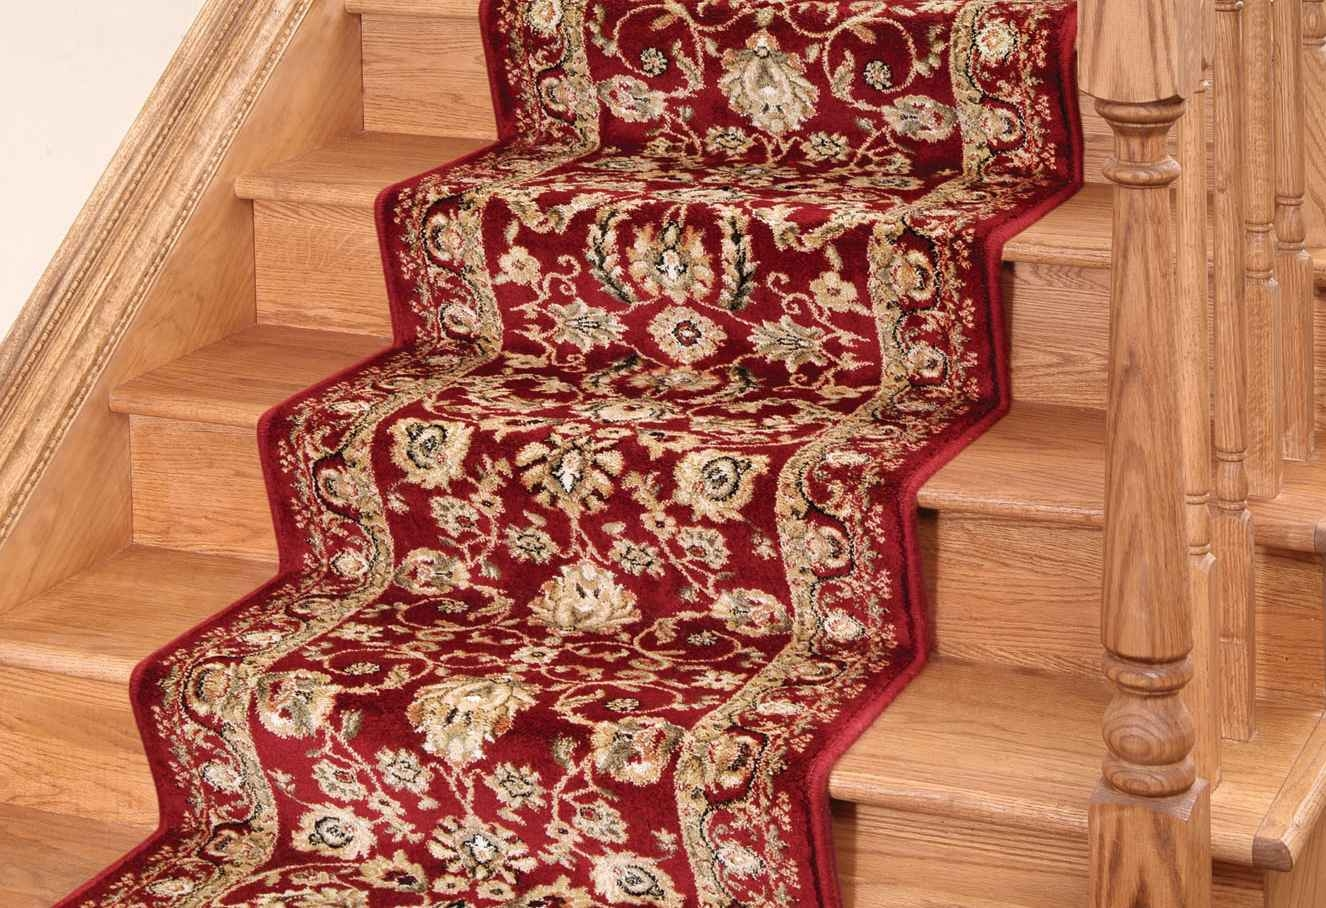 Carpet Runners For Stairs Home Design Larizza With Red Runner Rugs For Hallway (#5 of 20)